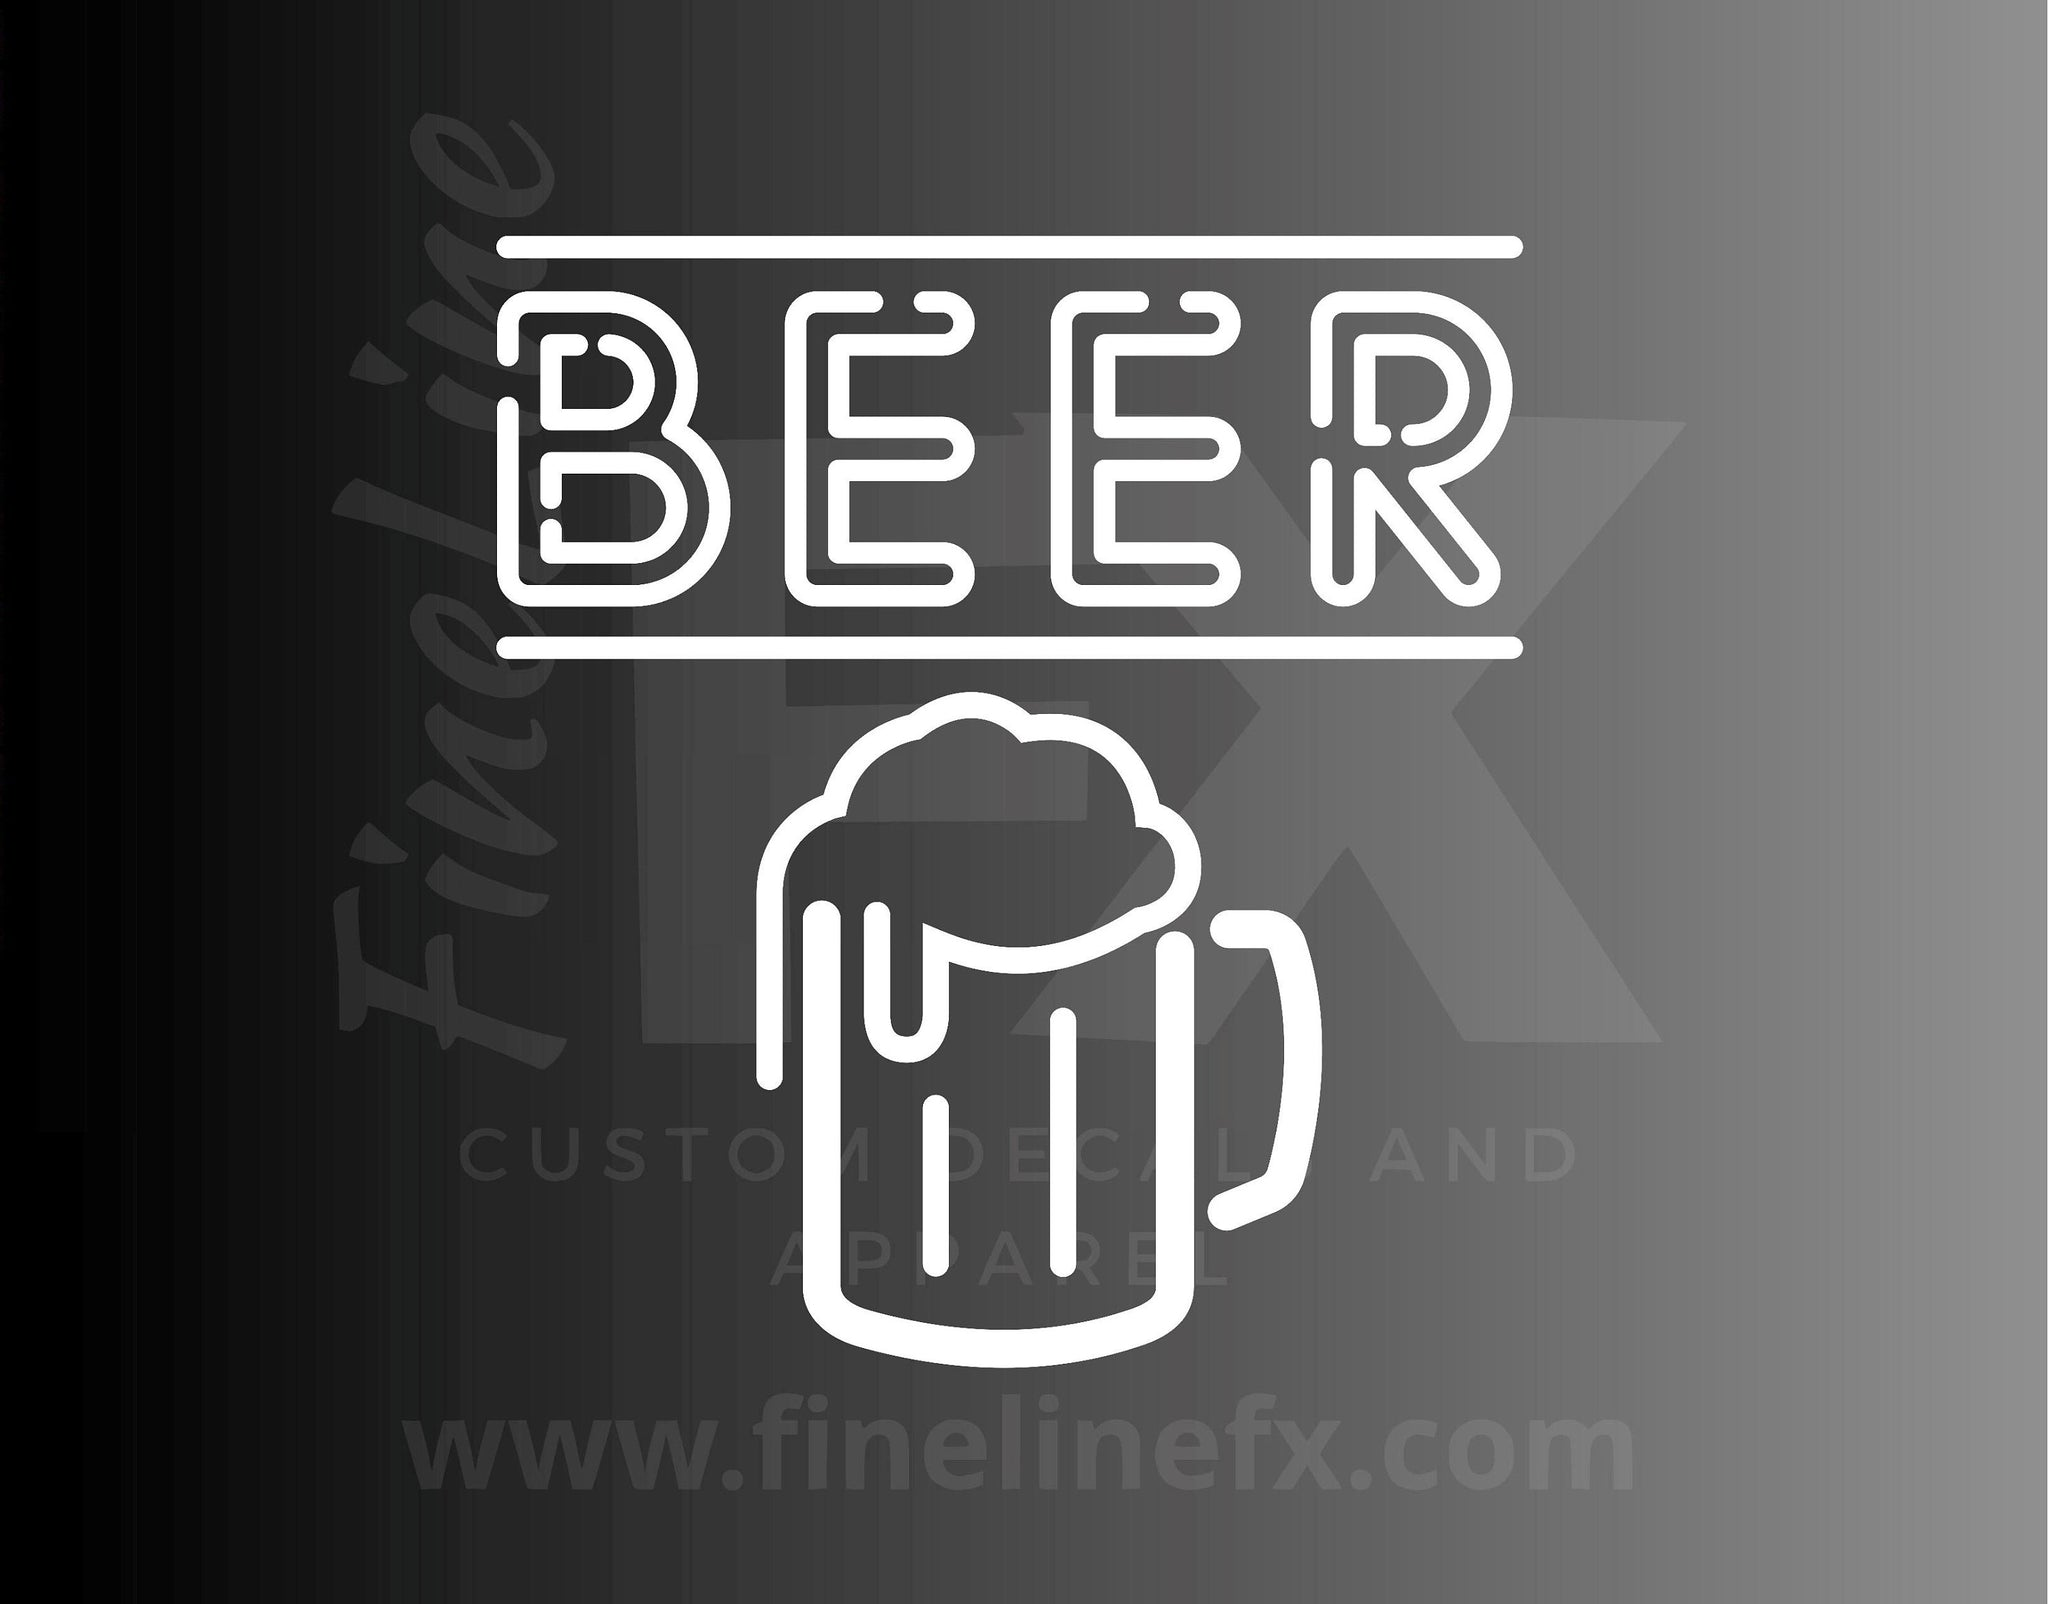 Beer Neon Sign Vinyl Decal Sticker